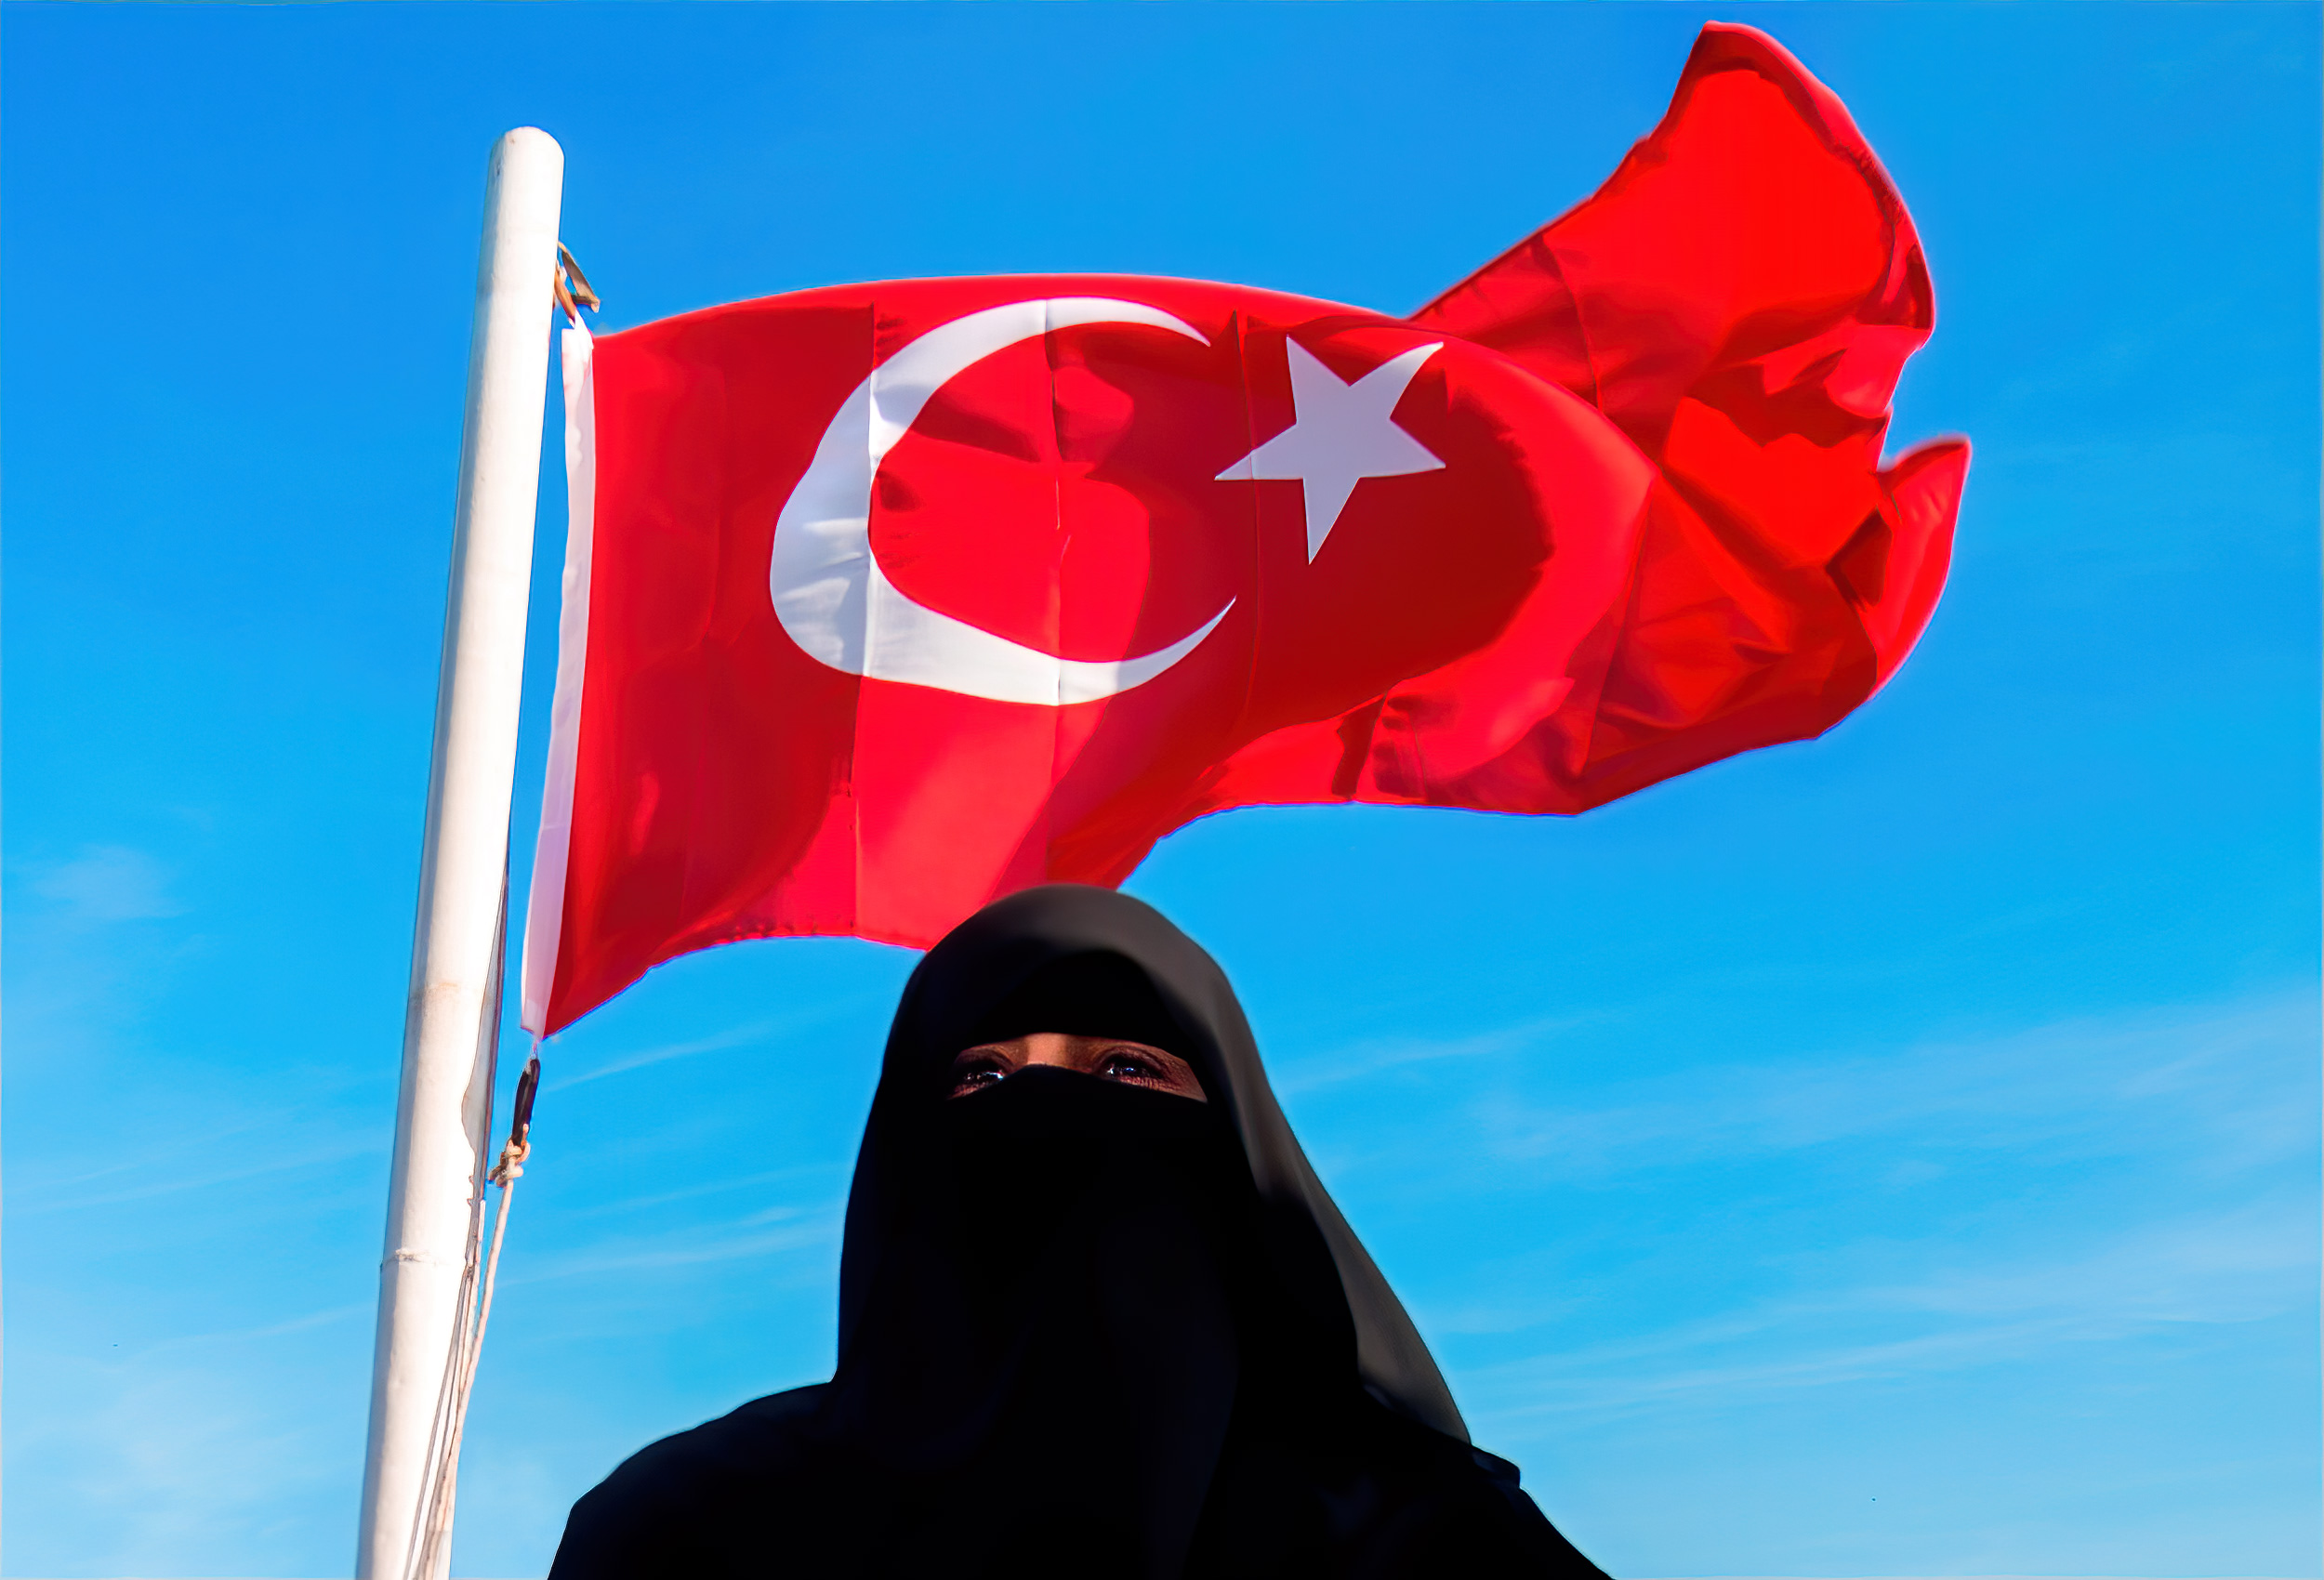 a-turkish-flag-flies-behind-a-woman-wearing-a-burqa-on-a-tour-boat-in-istanbul